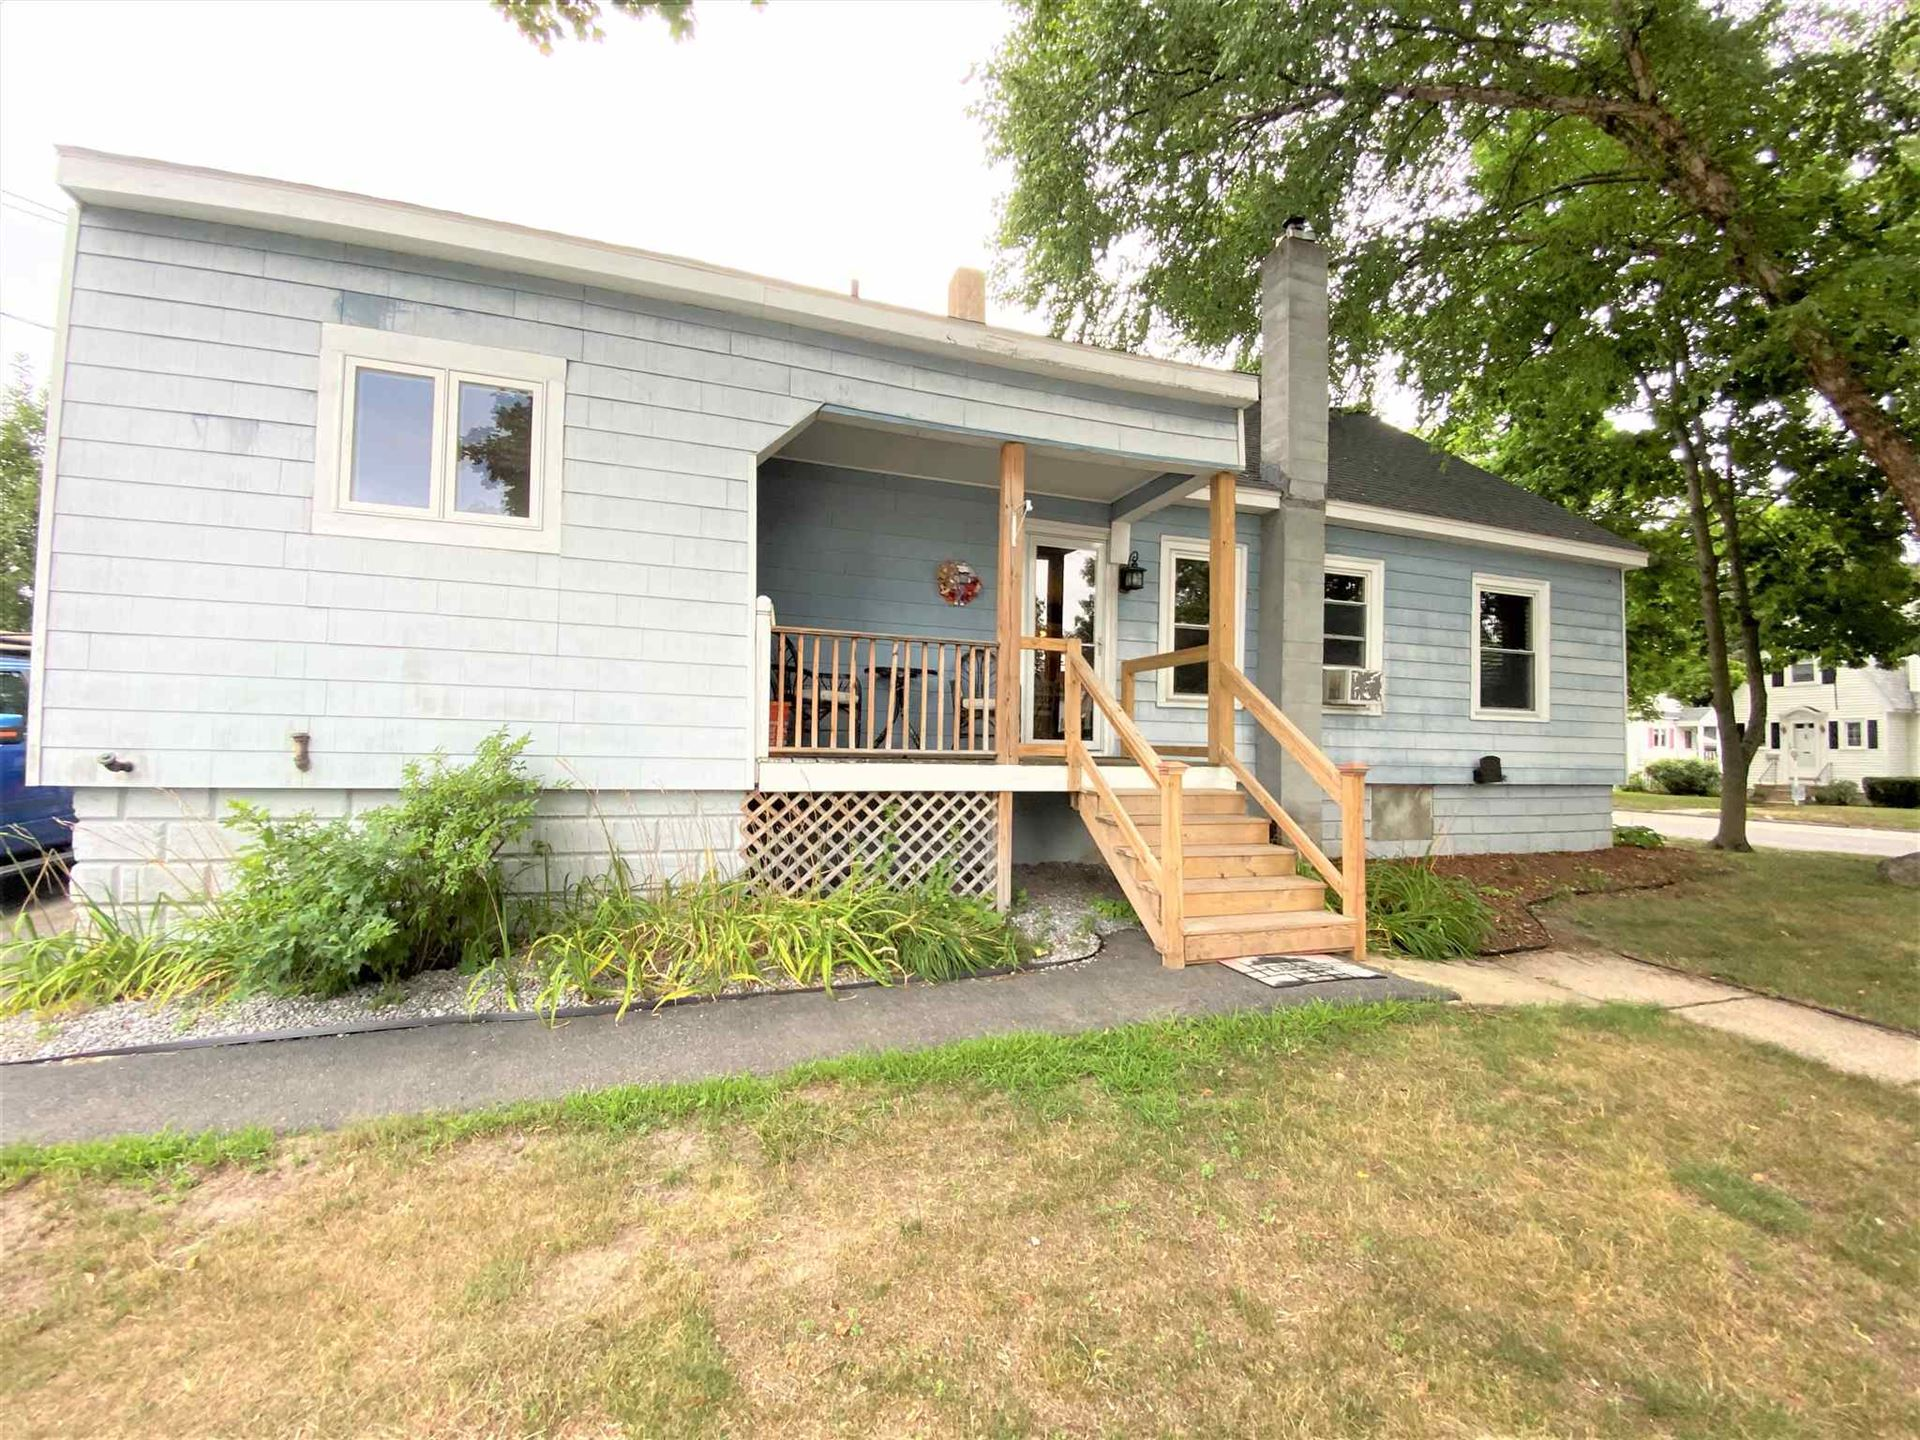 796 Montgomery Street, Manchester, NH 03102 - MLS#: 4818297